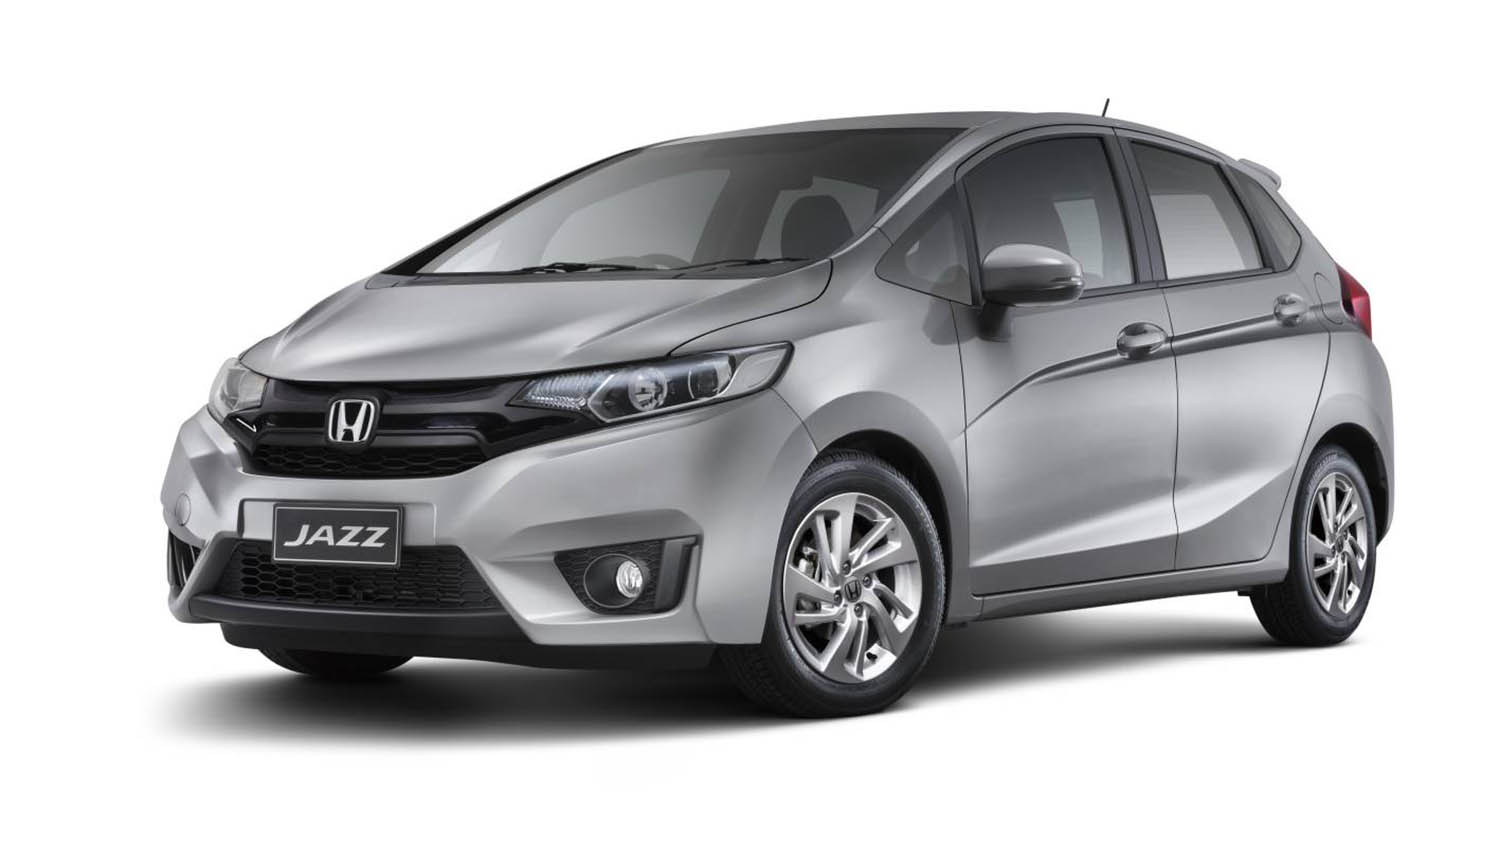 Honda Jazz Limited Edition returns for $19,490 drive-away ...